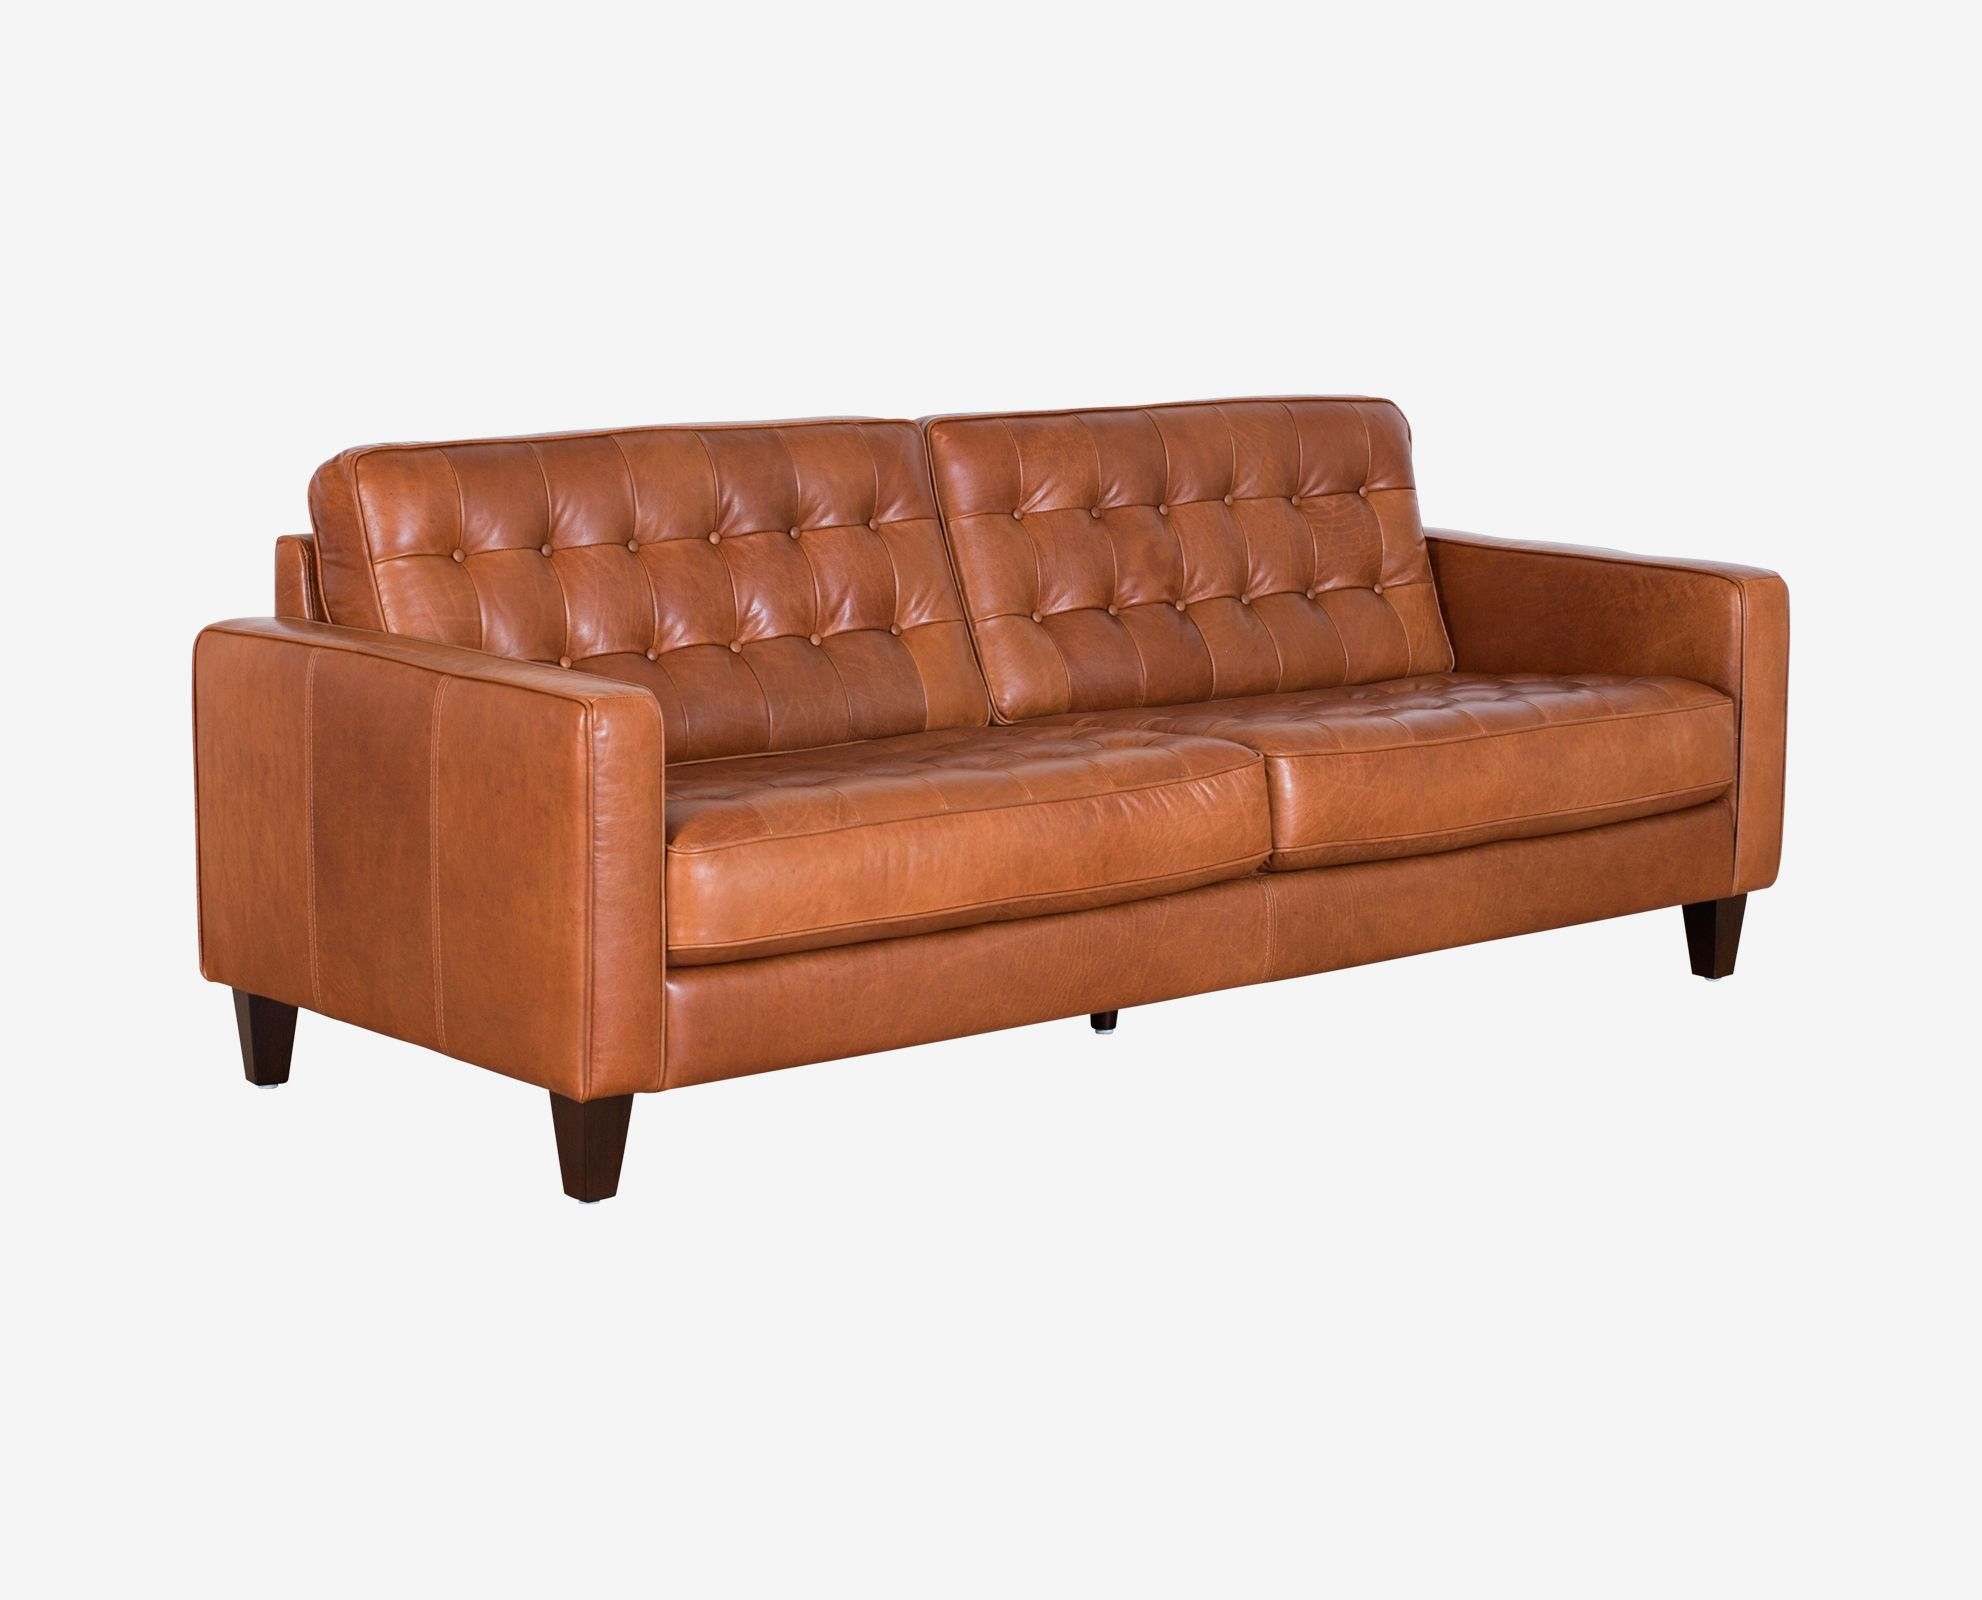 Scandinavian designs the gustav sofa features a button tufted design and deep comfortable cushions crafted from premium leather that highlights a range of